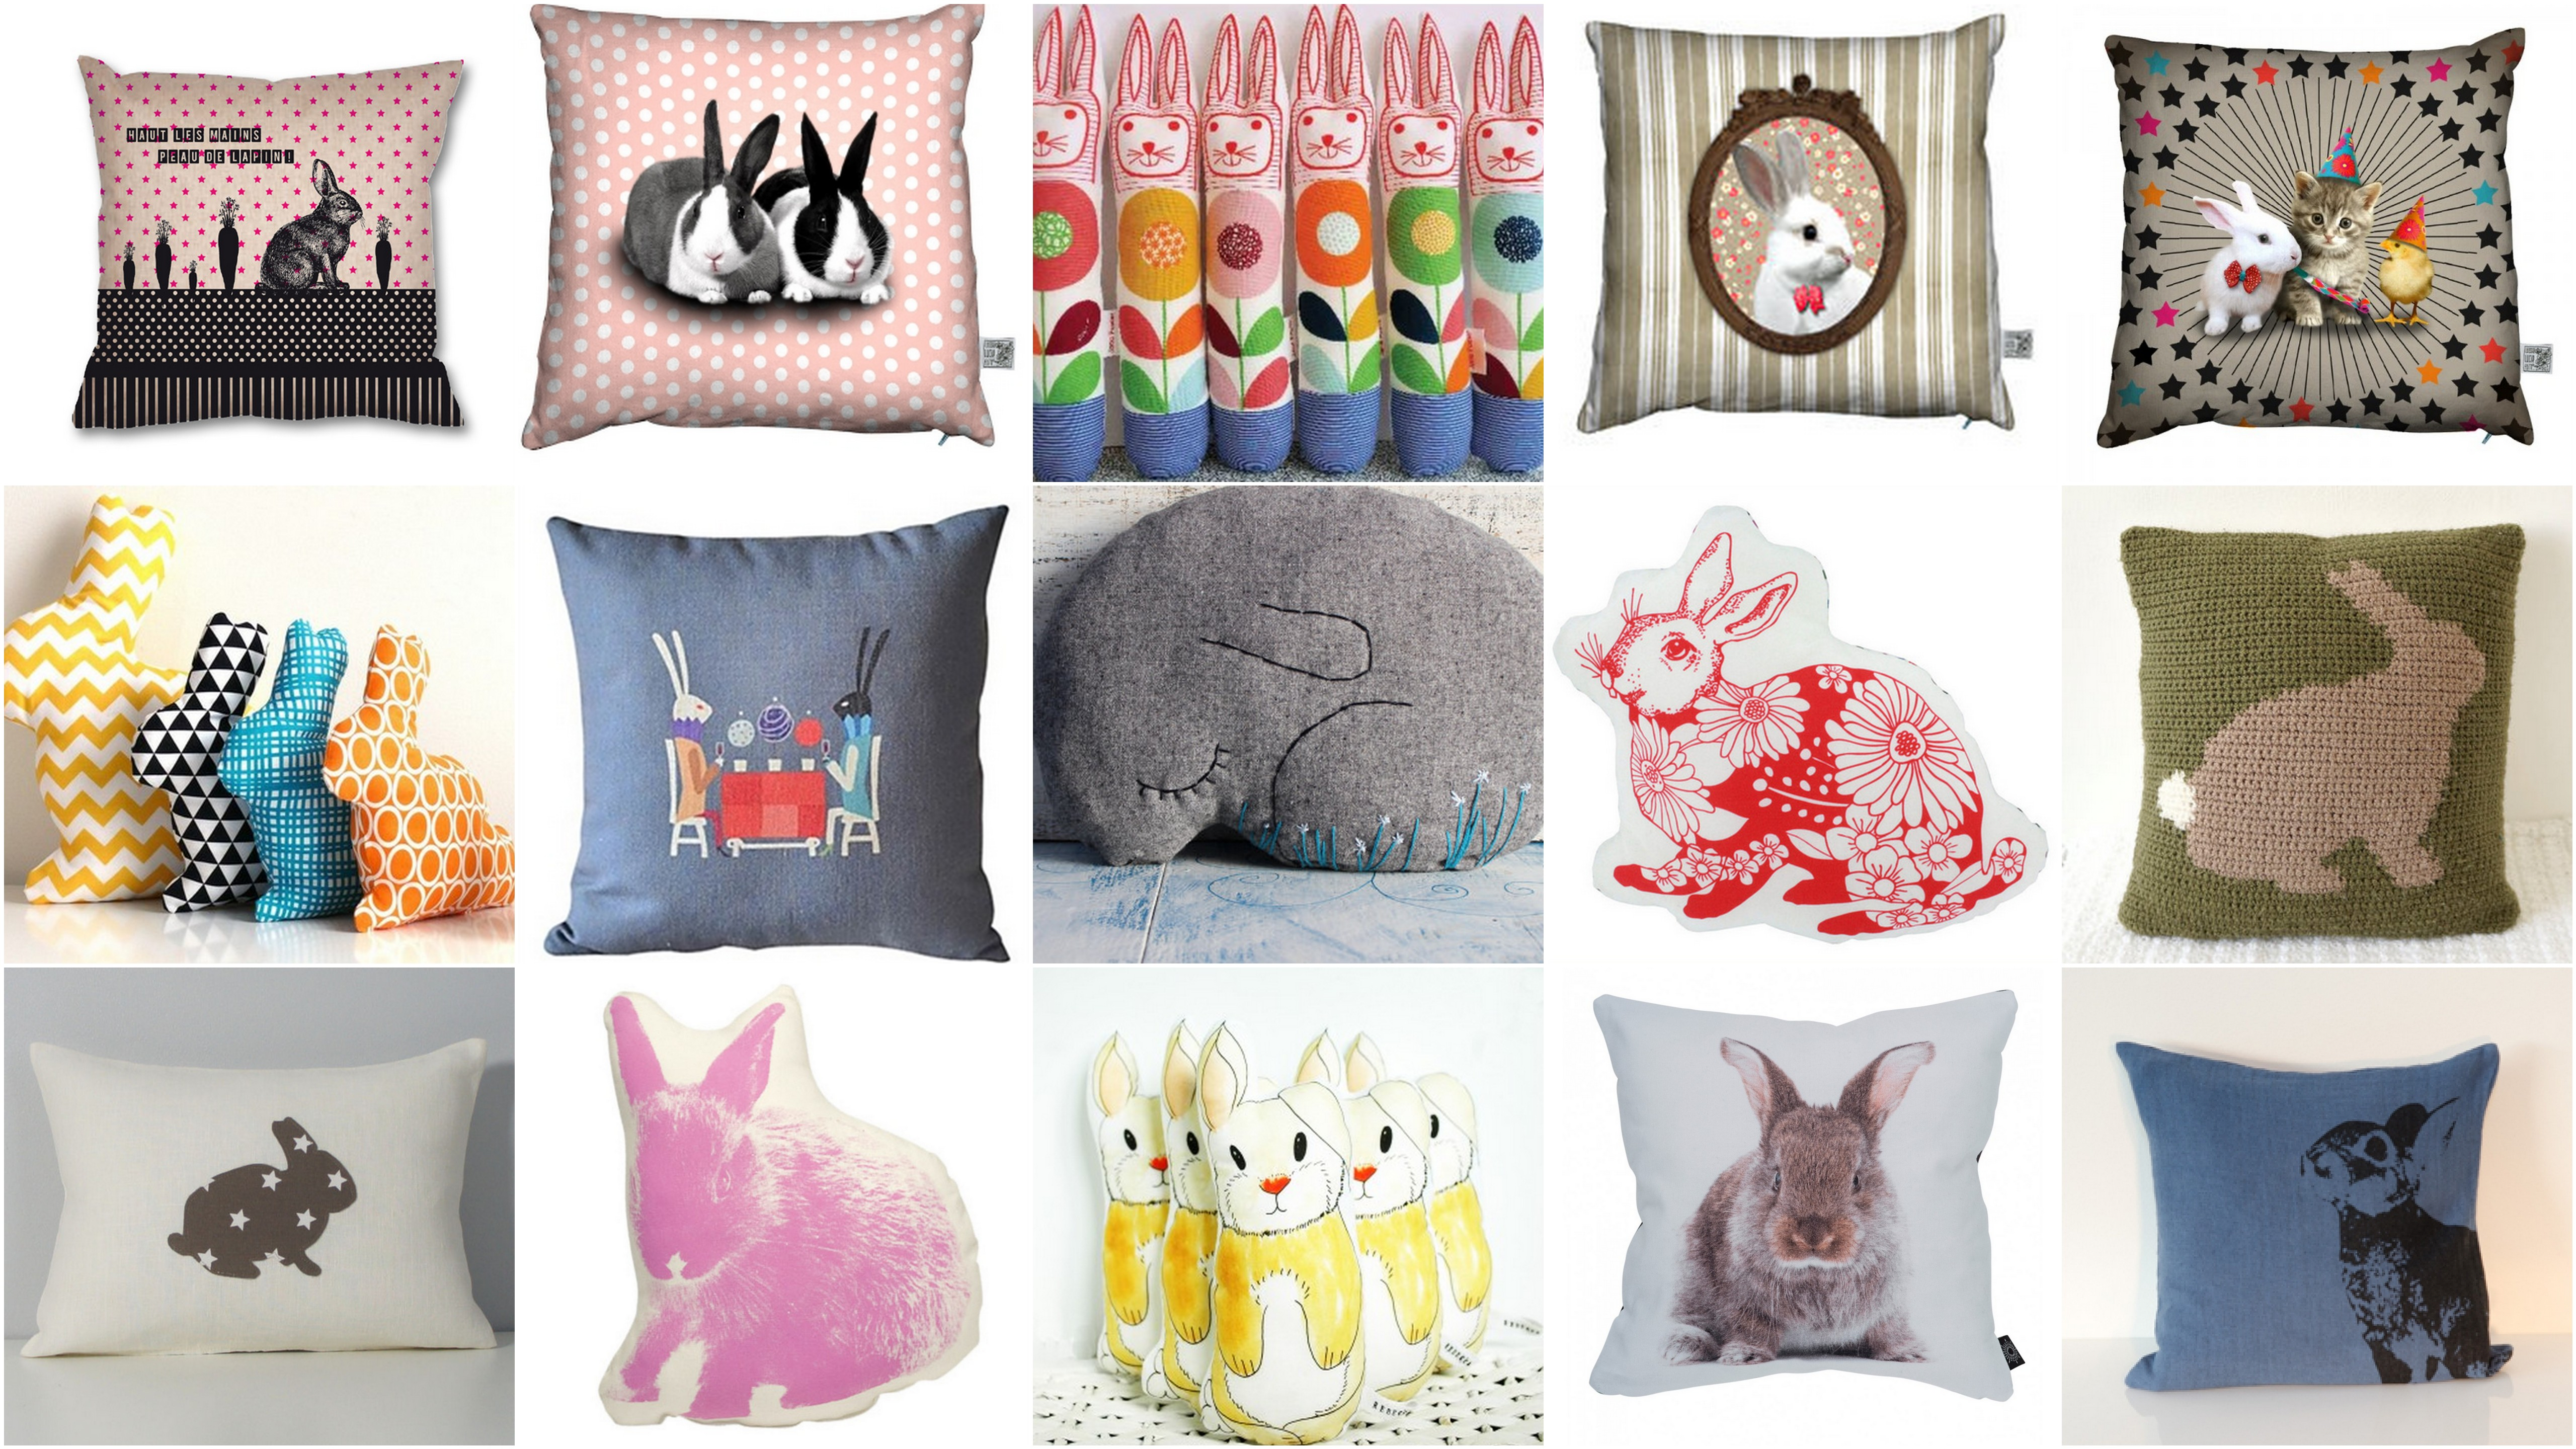 Les 10 plus beaux coussins lapin flying mamaflying mama - Beaux coussins design ...